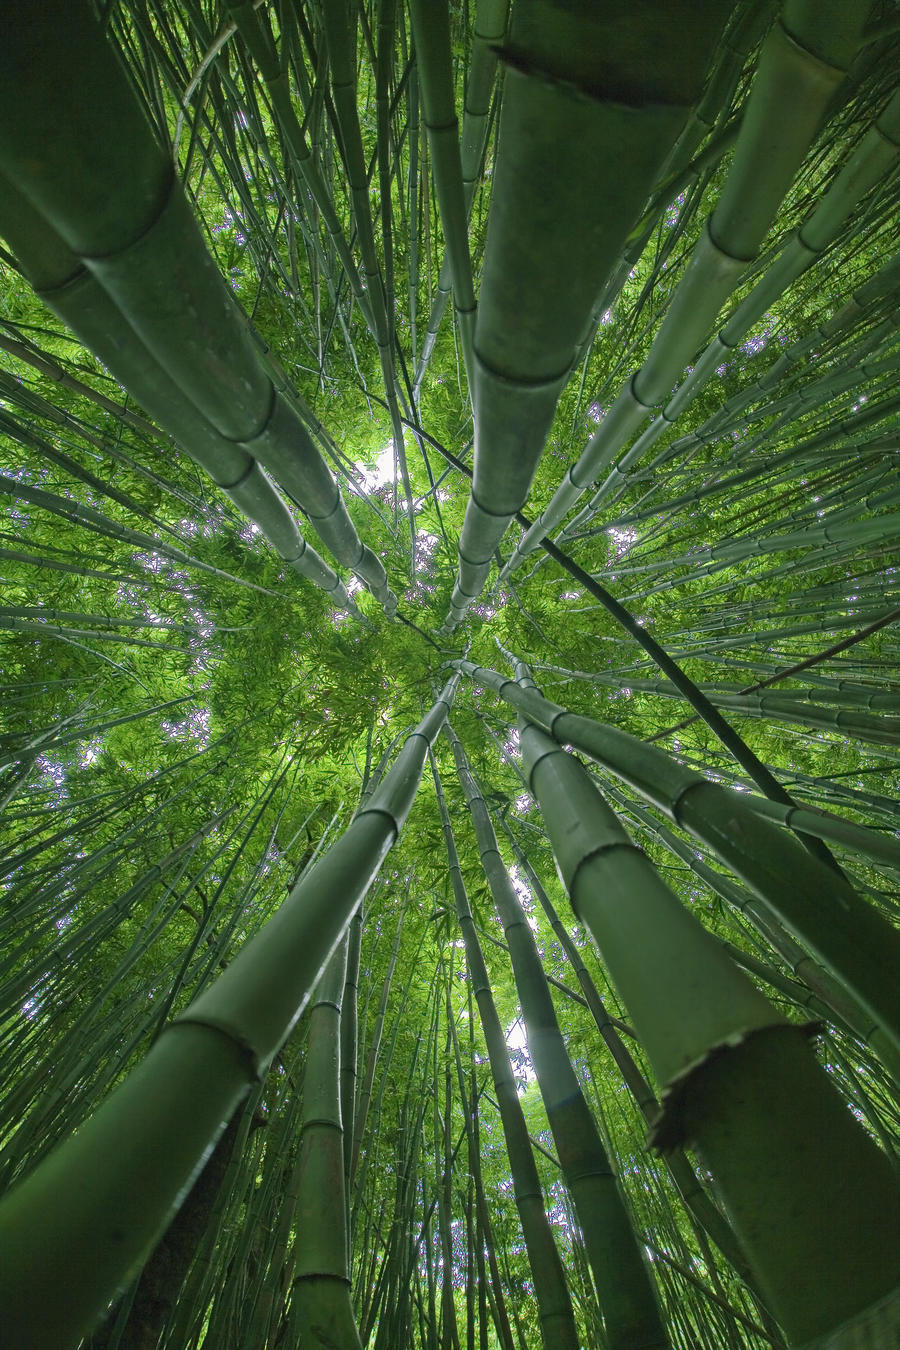 hawaii maui bamboo forest pacificstock canvas hawaii maui bamboo forest